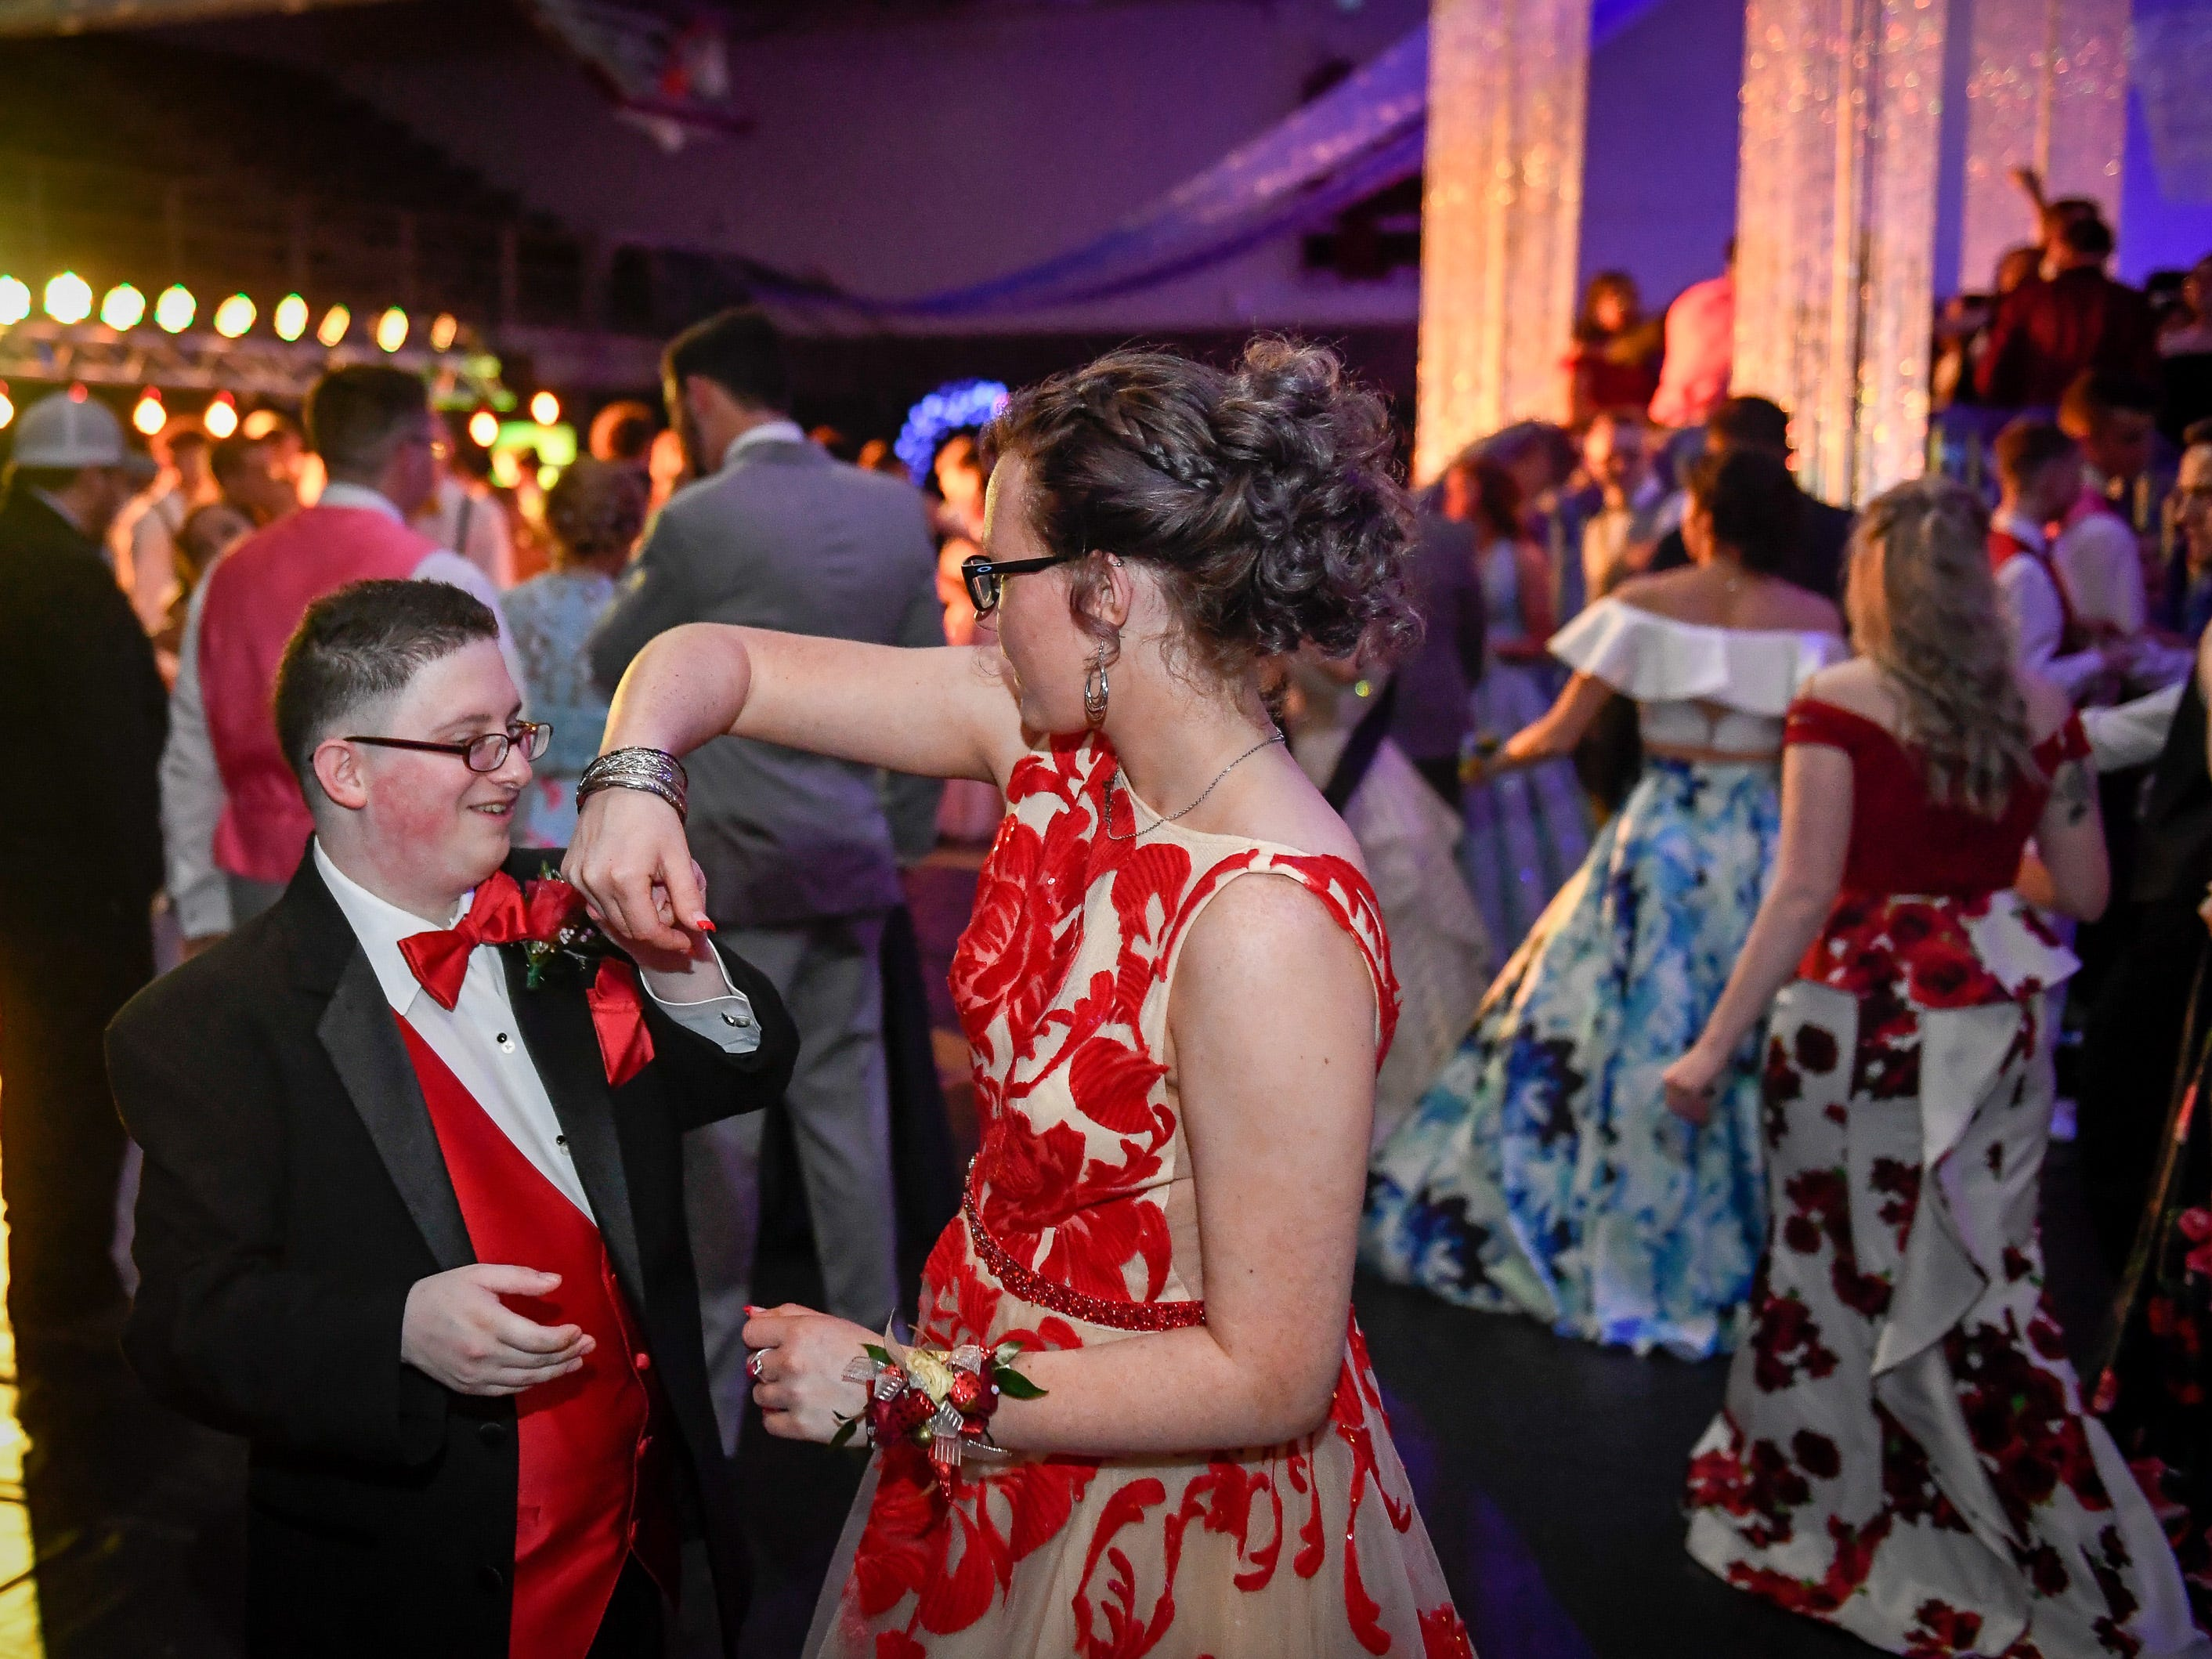 Michael Basmaeji dances with his girlfriend Jaden Yates at the Henderson County High Prom held at Colonel Gym Saturday, April 13, 2019.